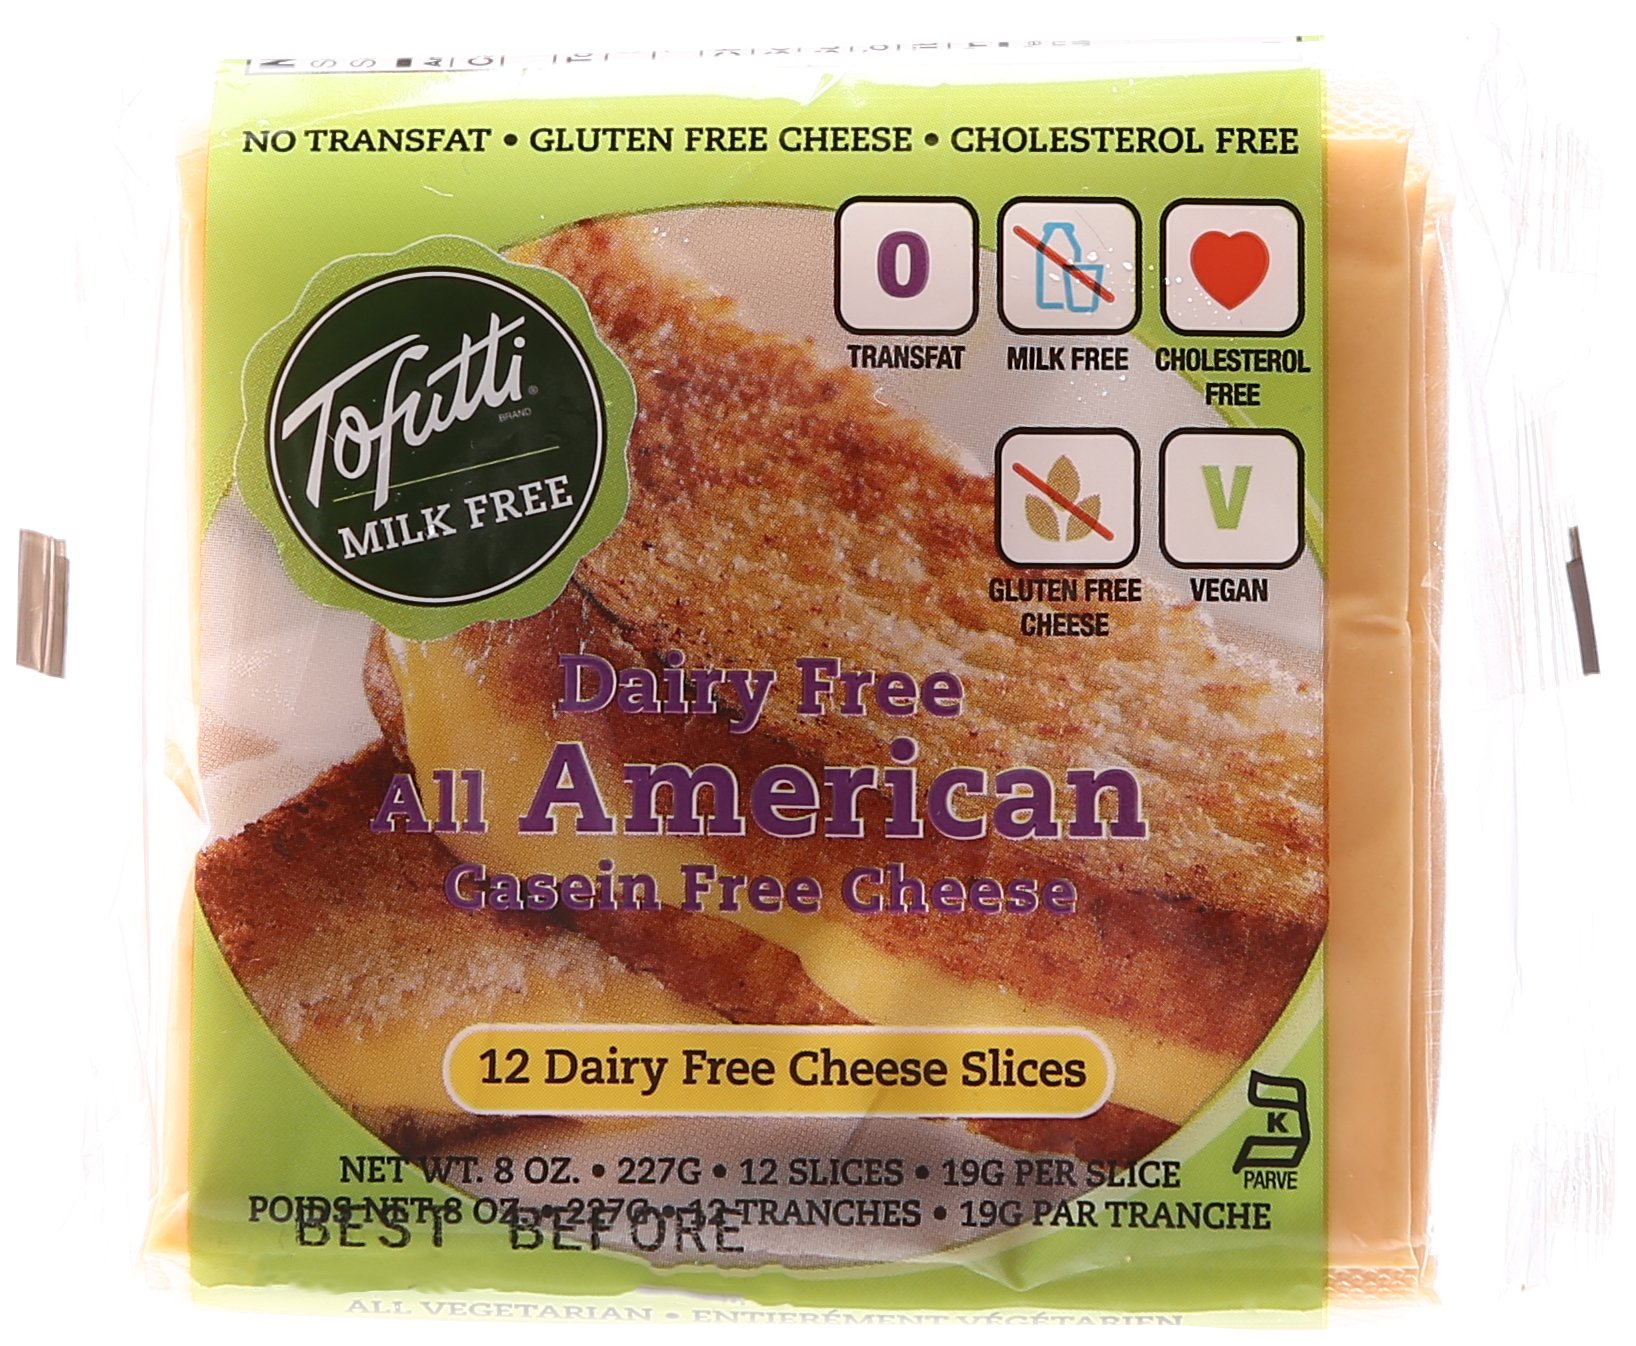 Tofutti, Soy Cheese Slices, American Flavor, 12 Slices, 8 oz